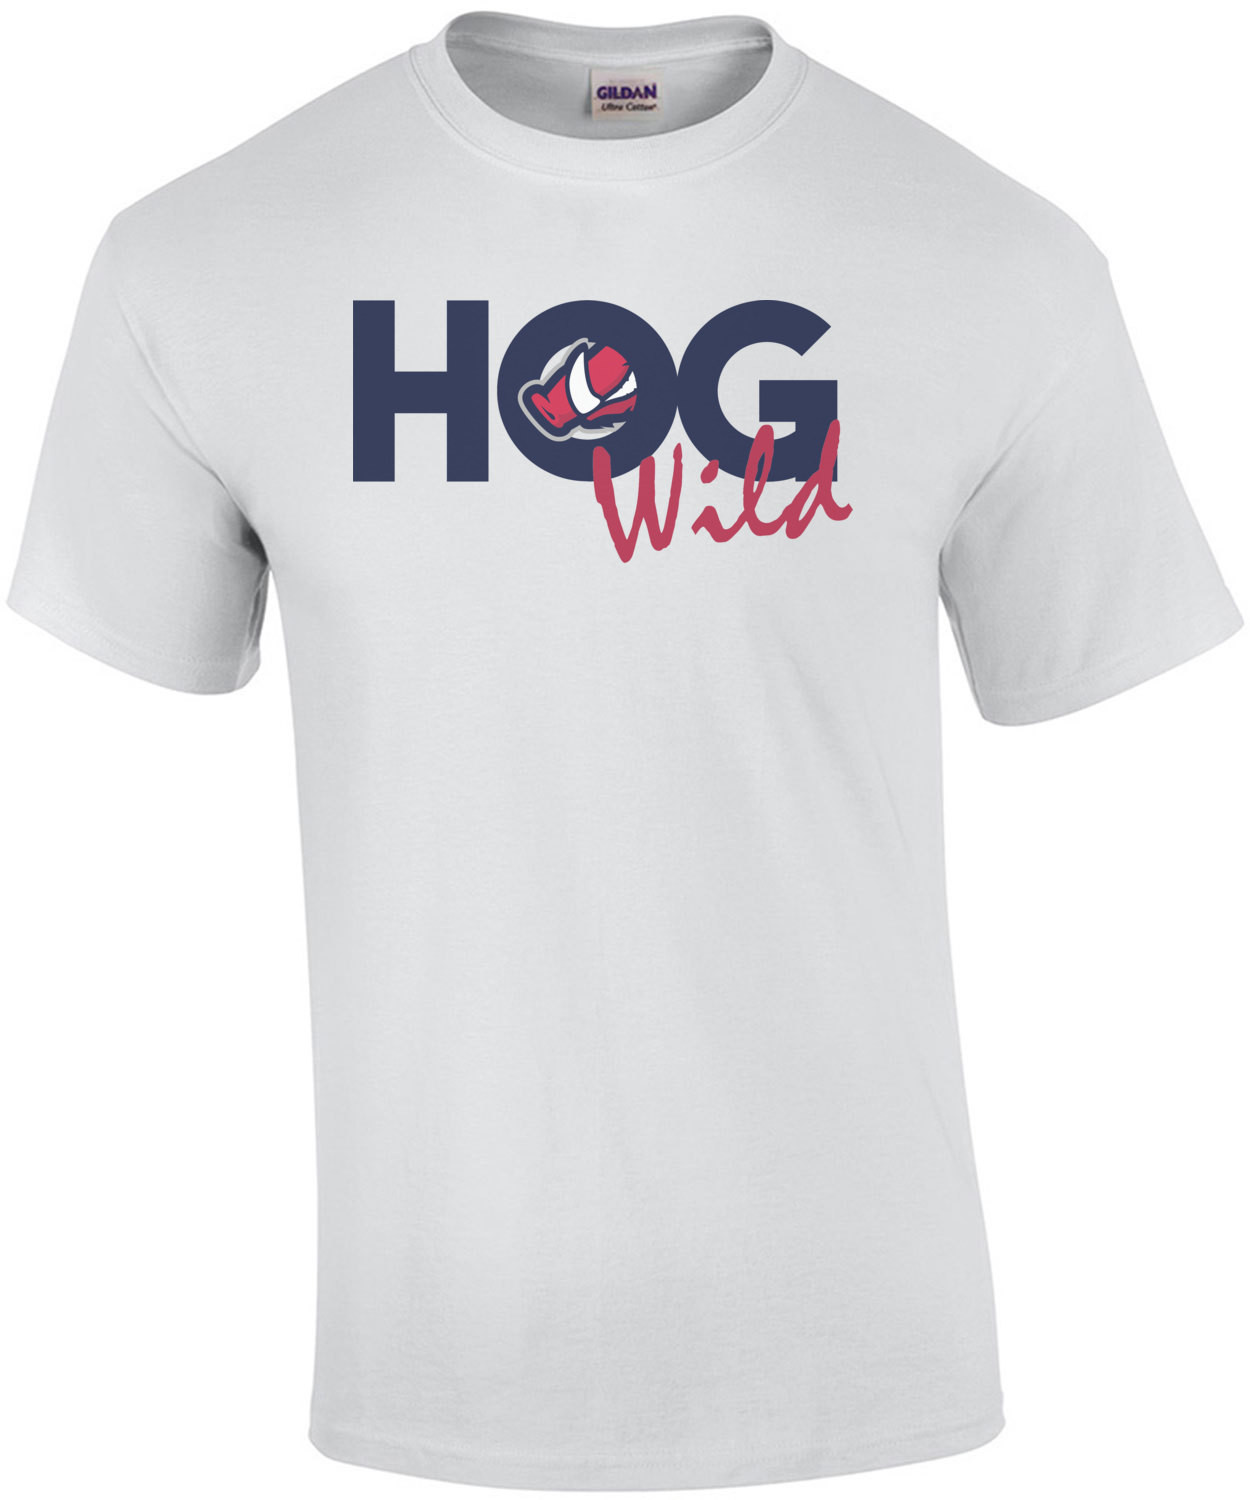 Arkansas Hod Wild Razorback Nose - Arkansas T-Shirt